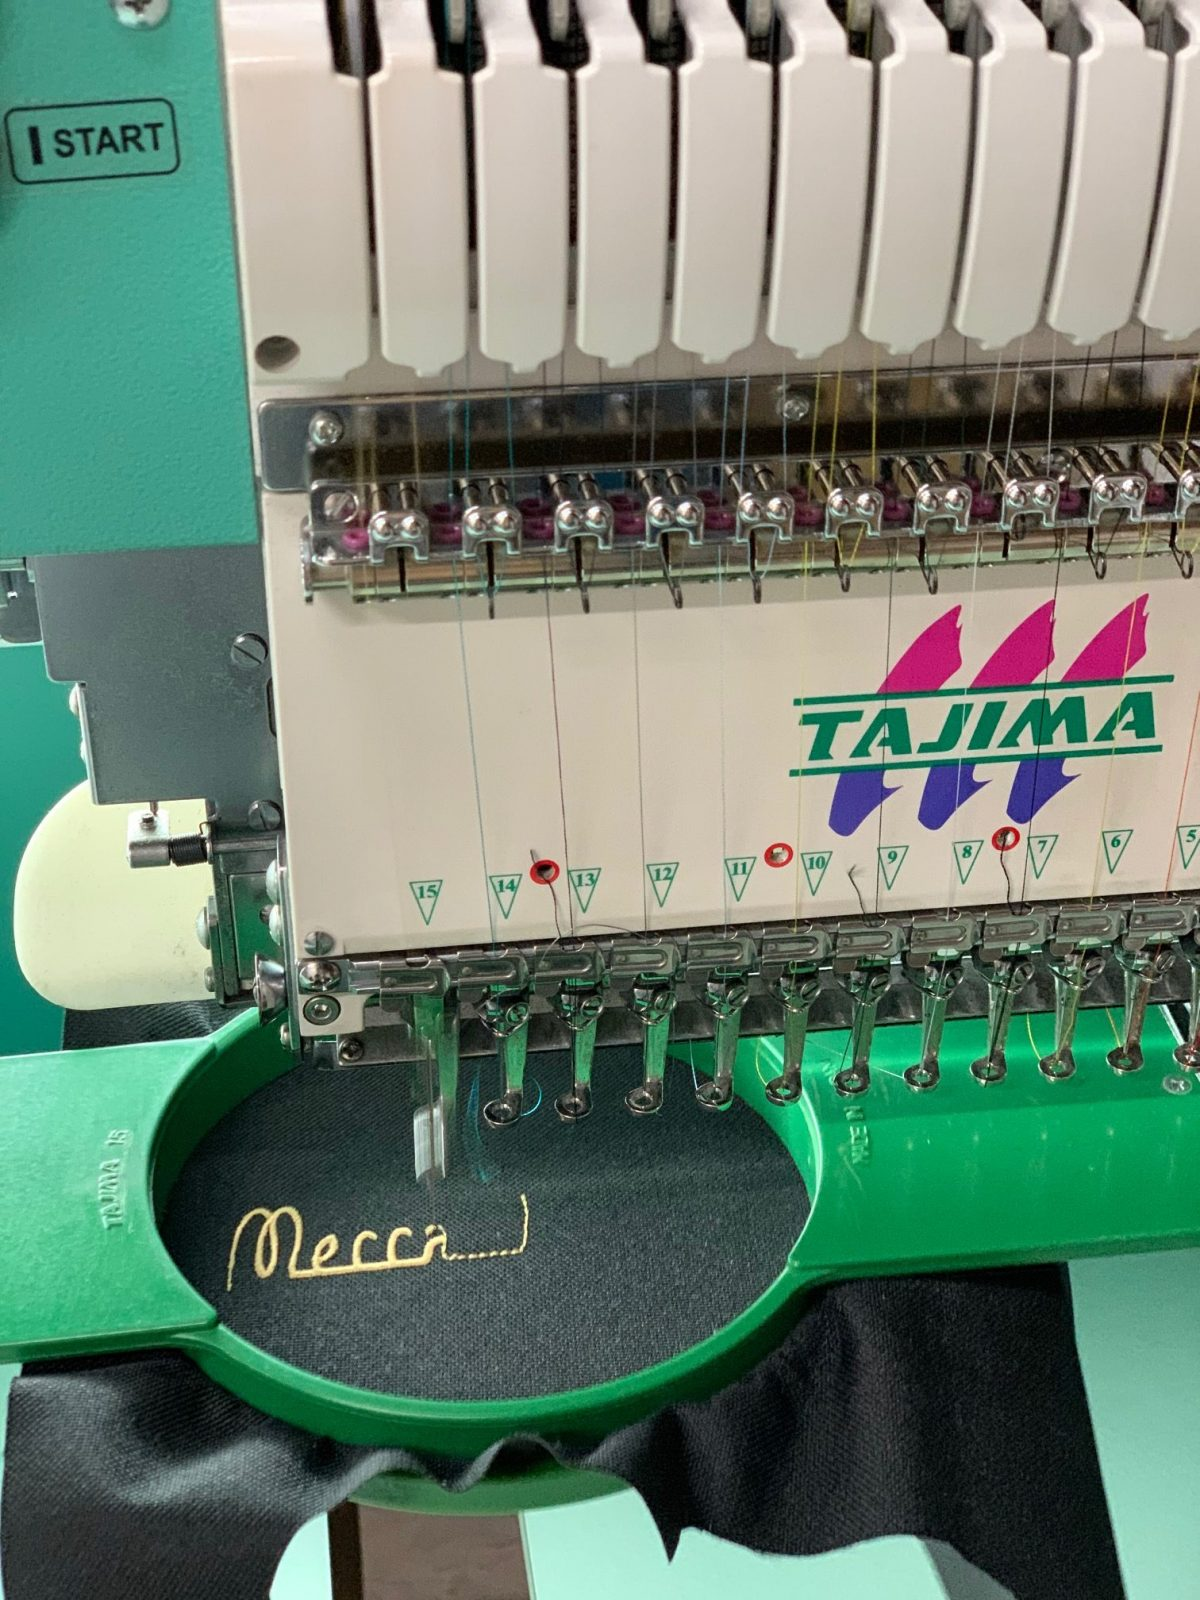 Mecca Bar Apron Embroidery on The Machine